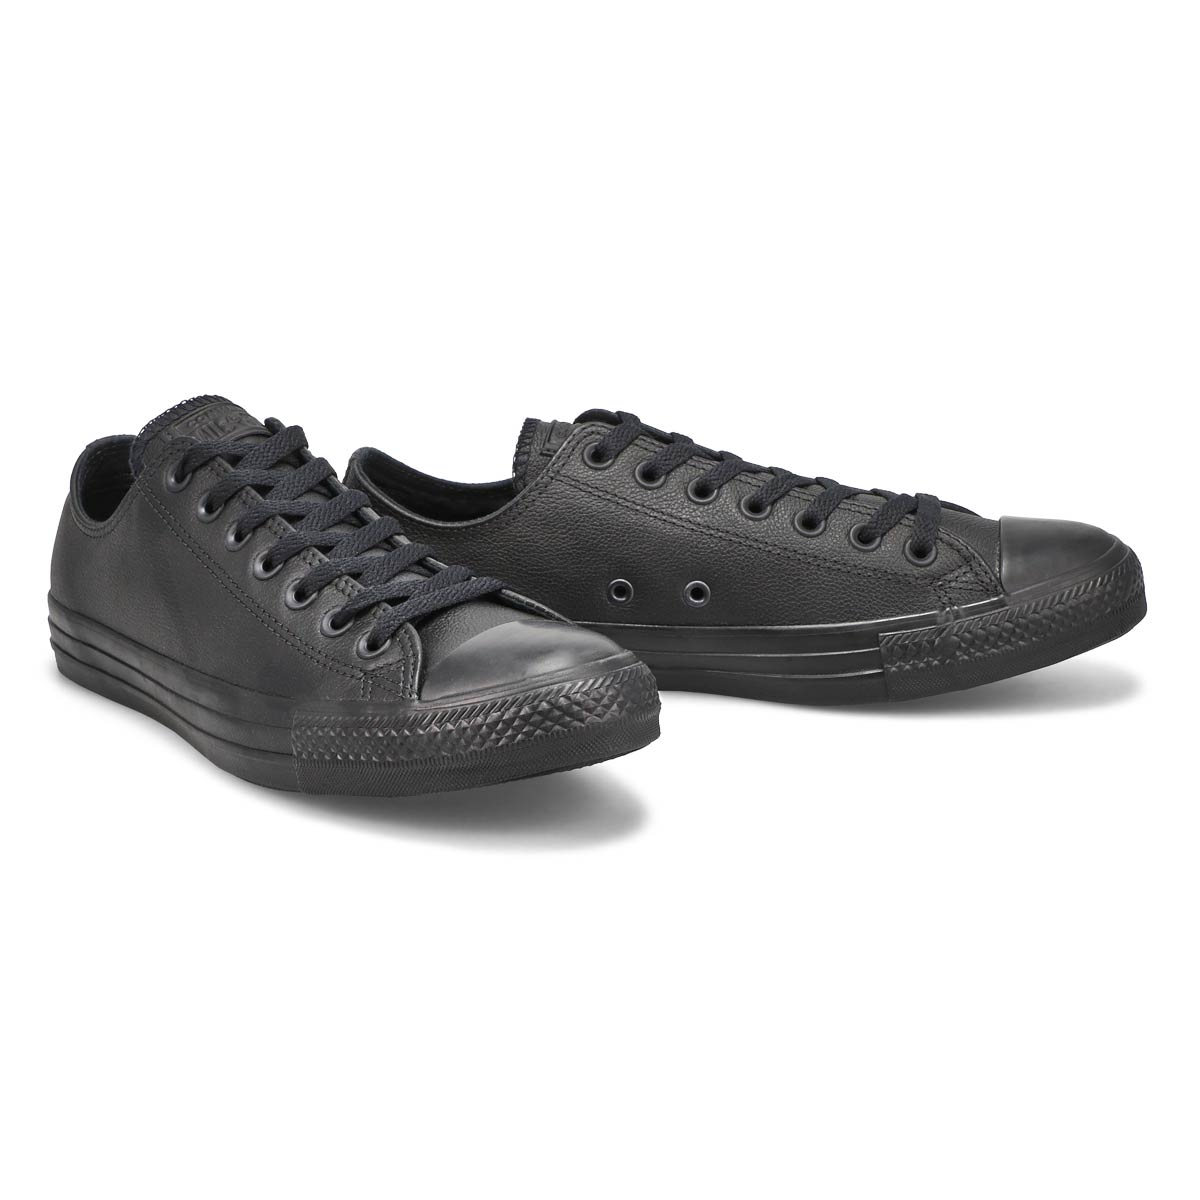 Espad. CT All Star Leather, noir, hommes